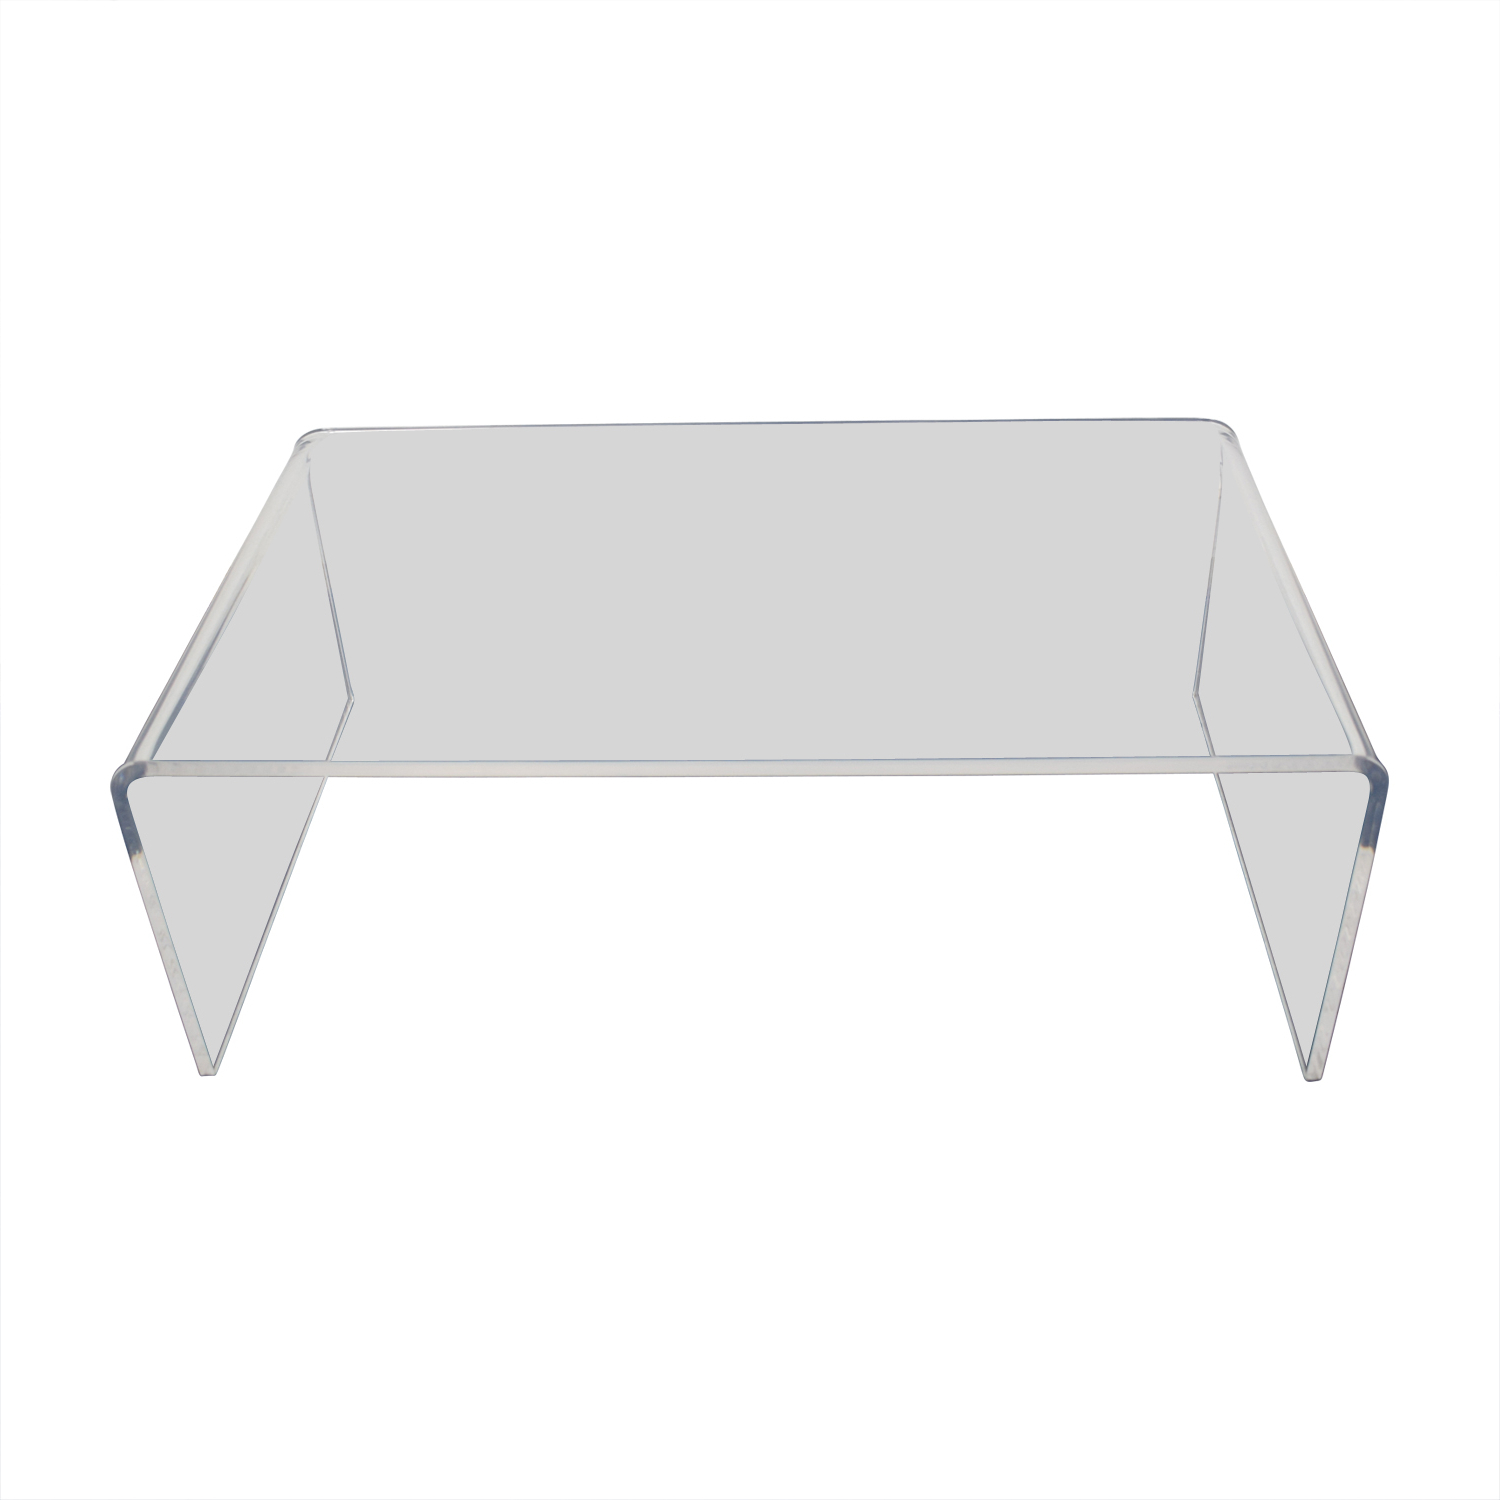 [%90% Off – West Elm West Elm Silver Coffee Table / Tables For Most Popular Peekaboo Acrylic Tall Coffee Tables|Peekaboo Acrylic Tall Coffee Tables Regarding Current 90% Off – West Elm West Elm Silver Coffee Table / Tables|Popular Peekaboo Acrylic Tall Coffee Tables Pertaining To 90% Off – West Elm West Elm Silver Coffee Table / Tables|Well Known 90% Off – West Elm West Elm Silver Coffee Table / Tables Pertaining To Peekaboo Acrylic Tall Coffee Tables%] (View 3 of 20)